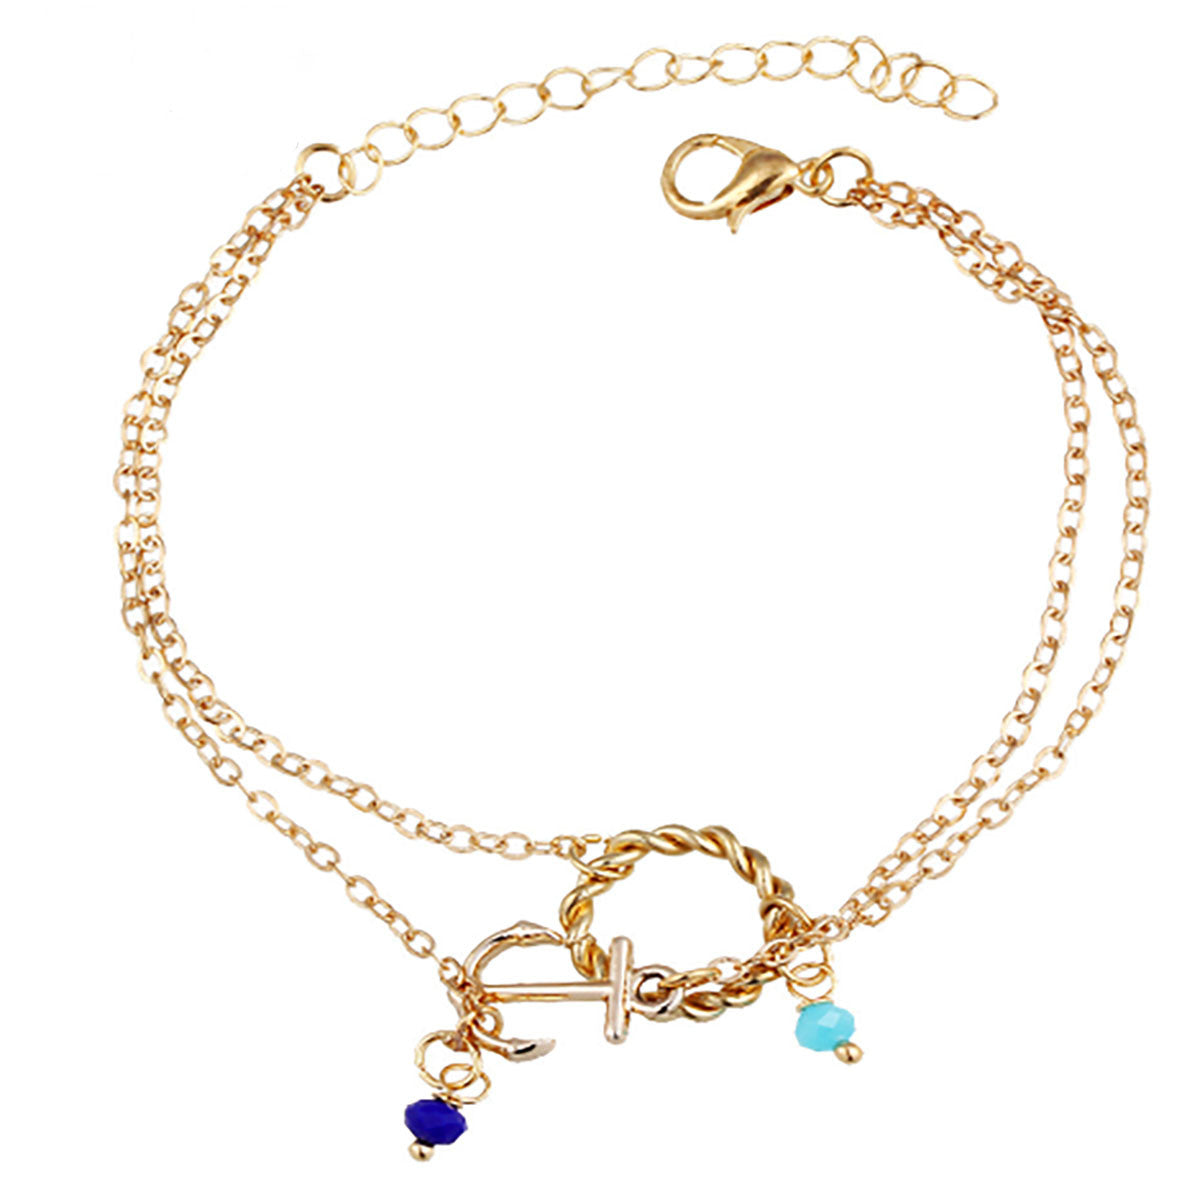 sizes anklet in yellow gold anchor